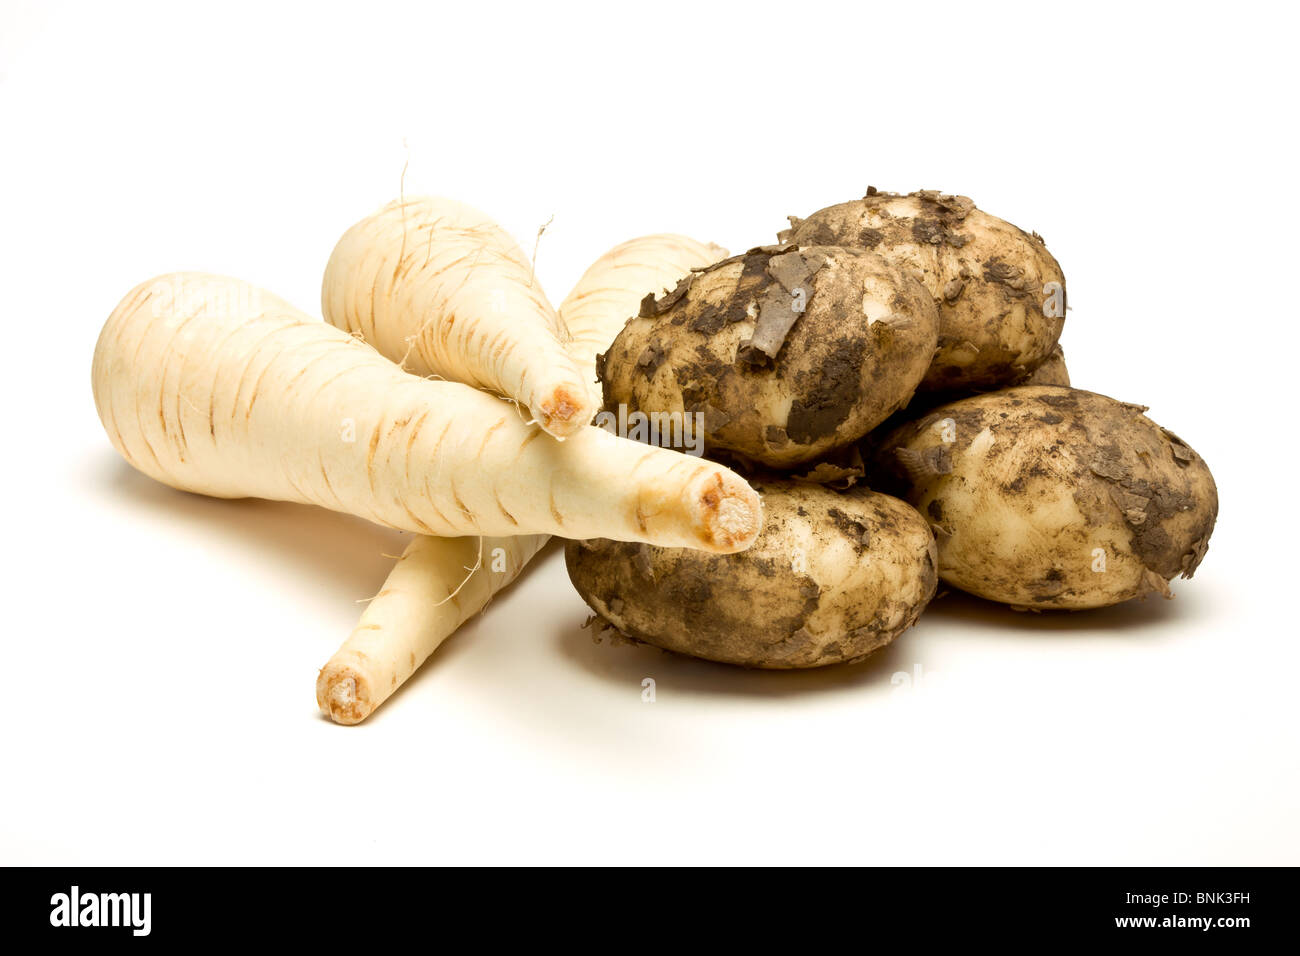 Root vegetables of Parsnip and New Potatoes from low perspective isolated against white background. - Stock Image